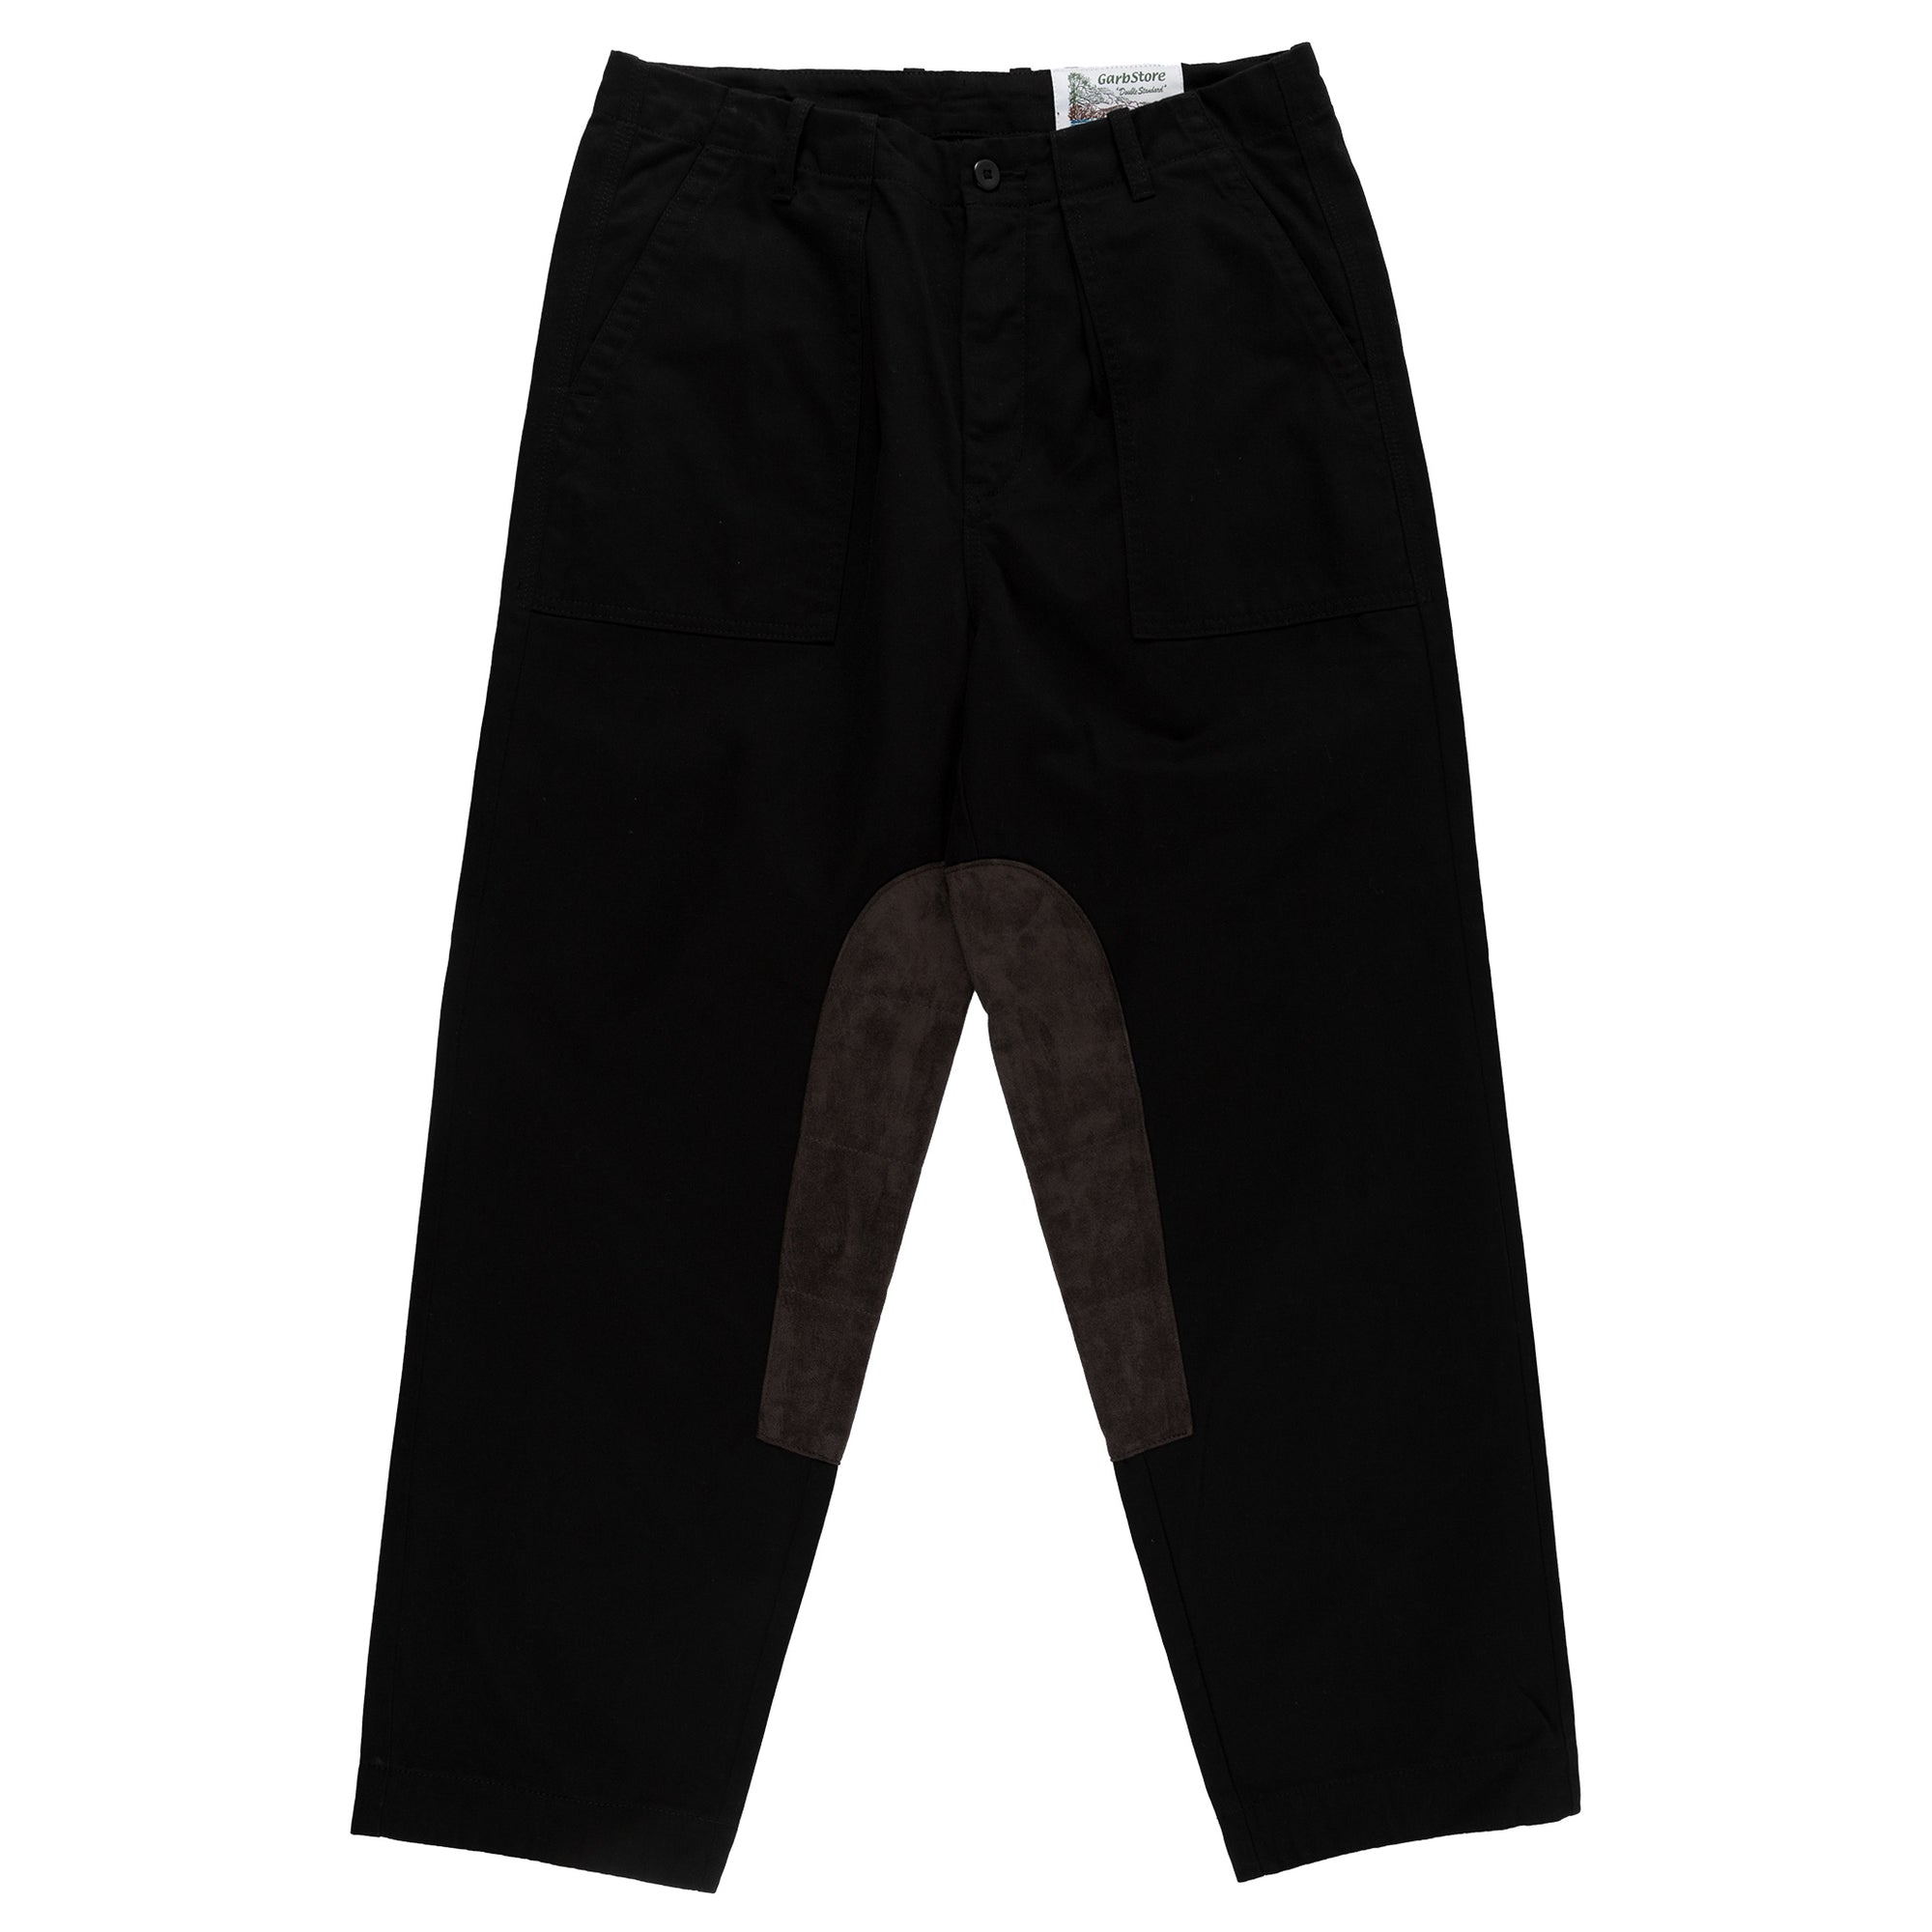 garbstore ruffle trouser black